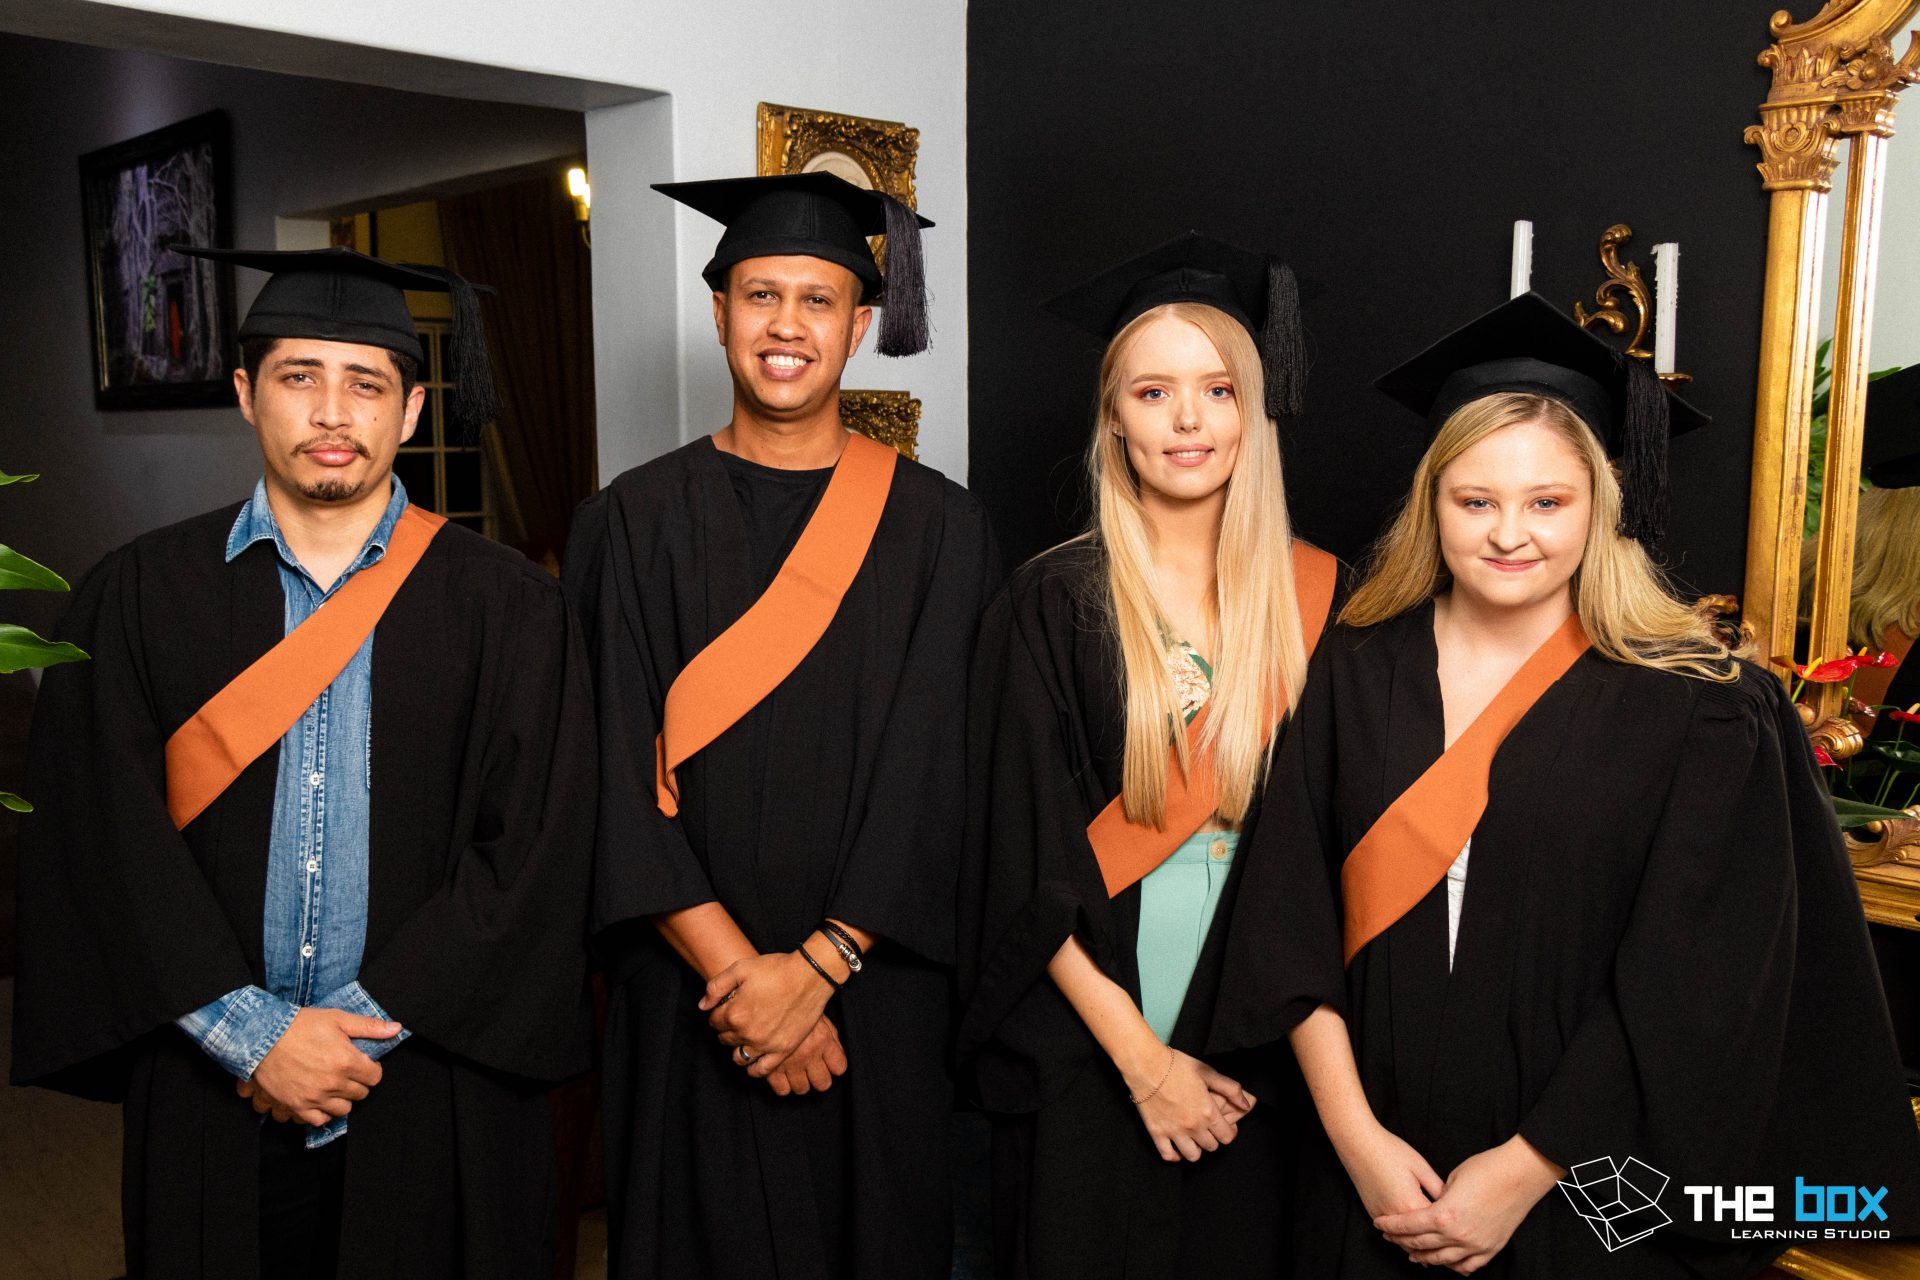 Graduation Photography for The Box Learning Studio